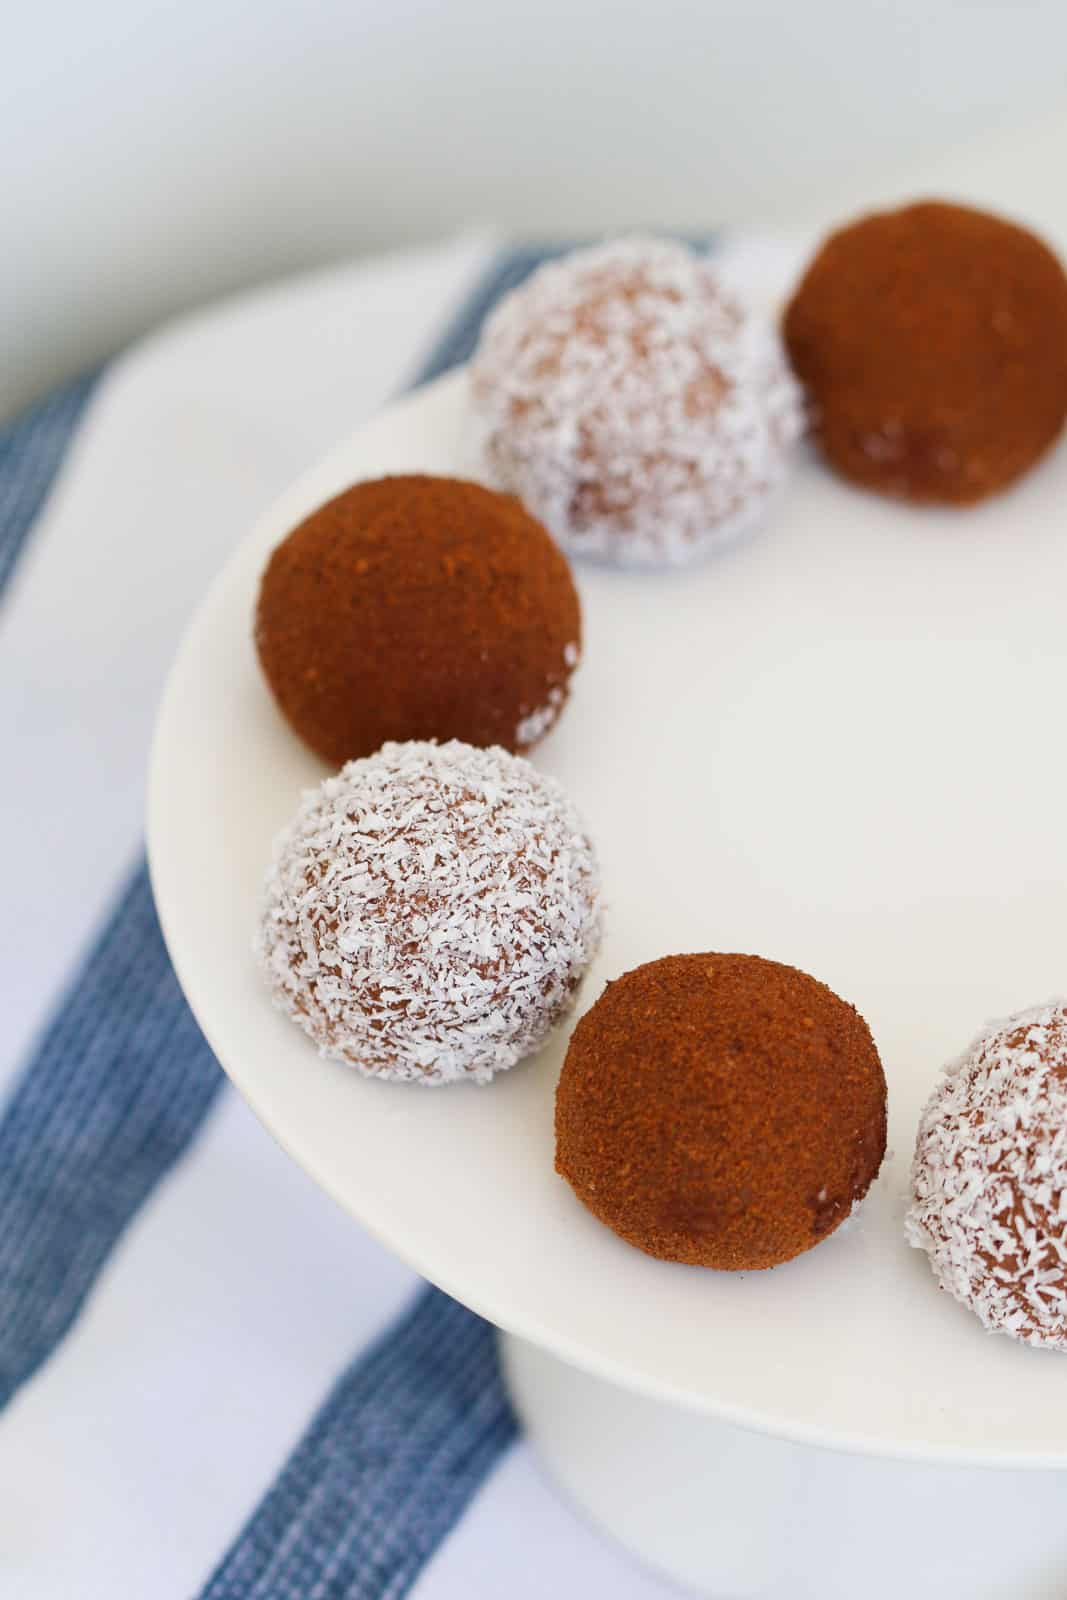 Coconut and cocoa balls on a white cake plate.